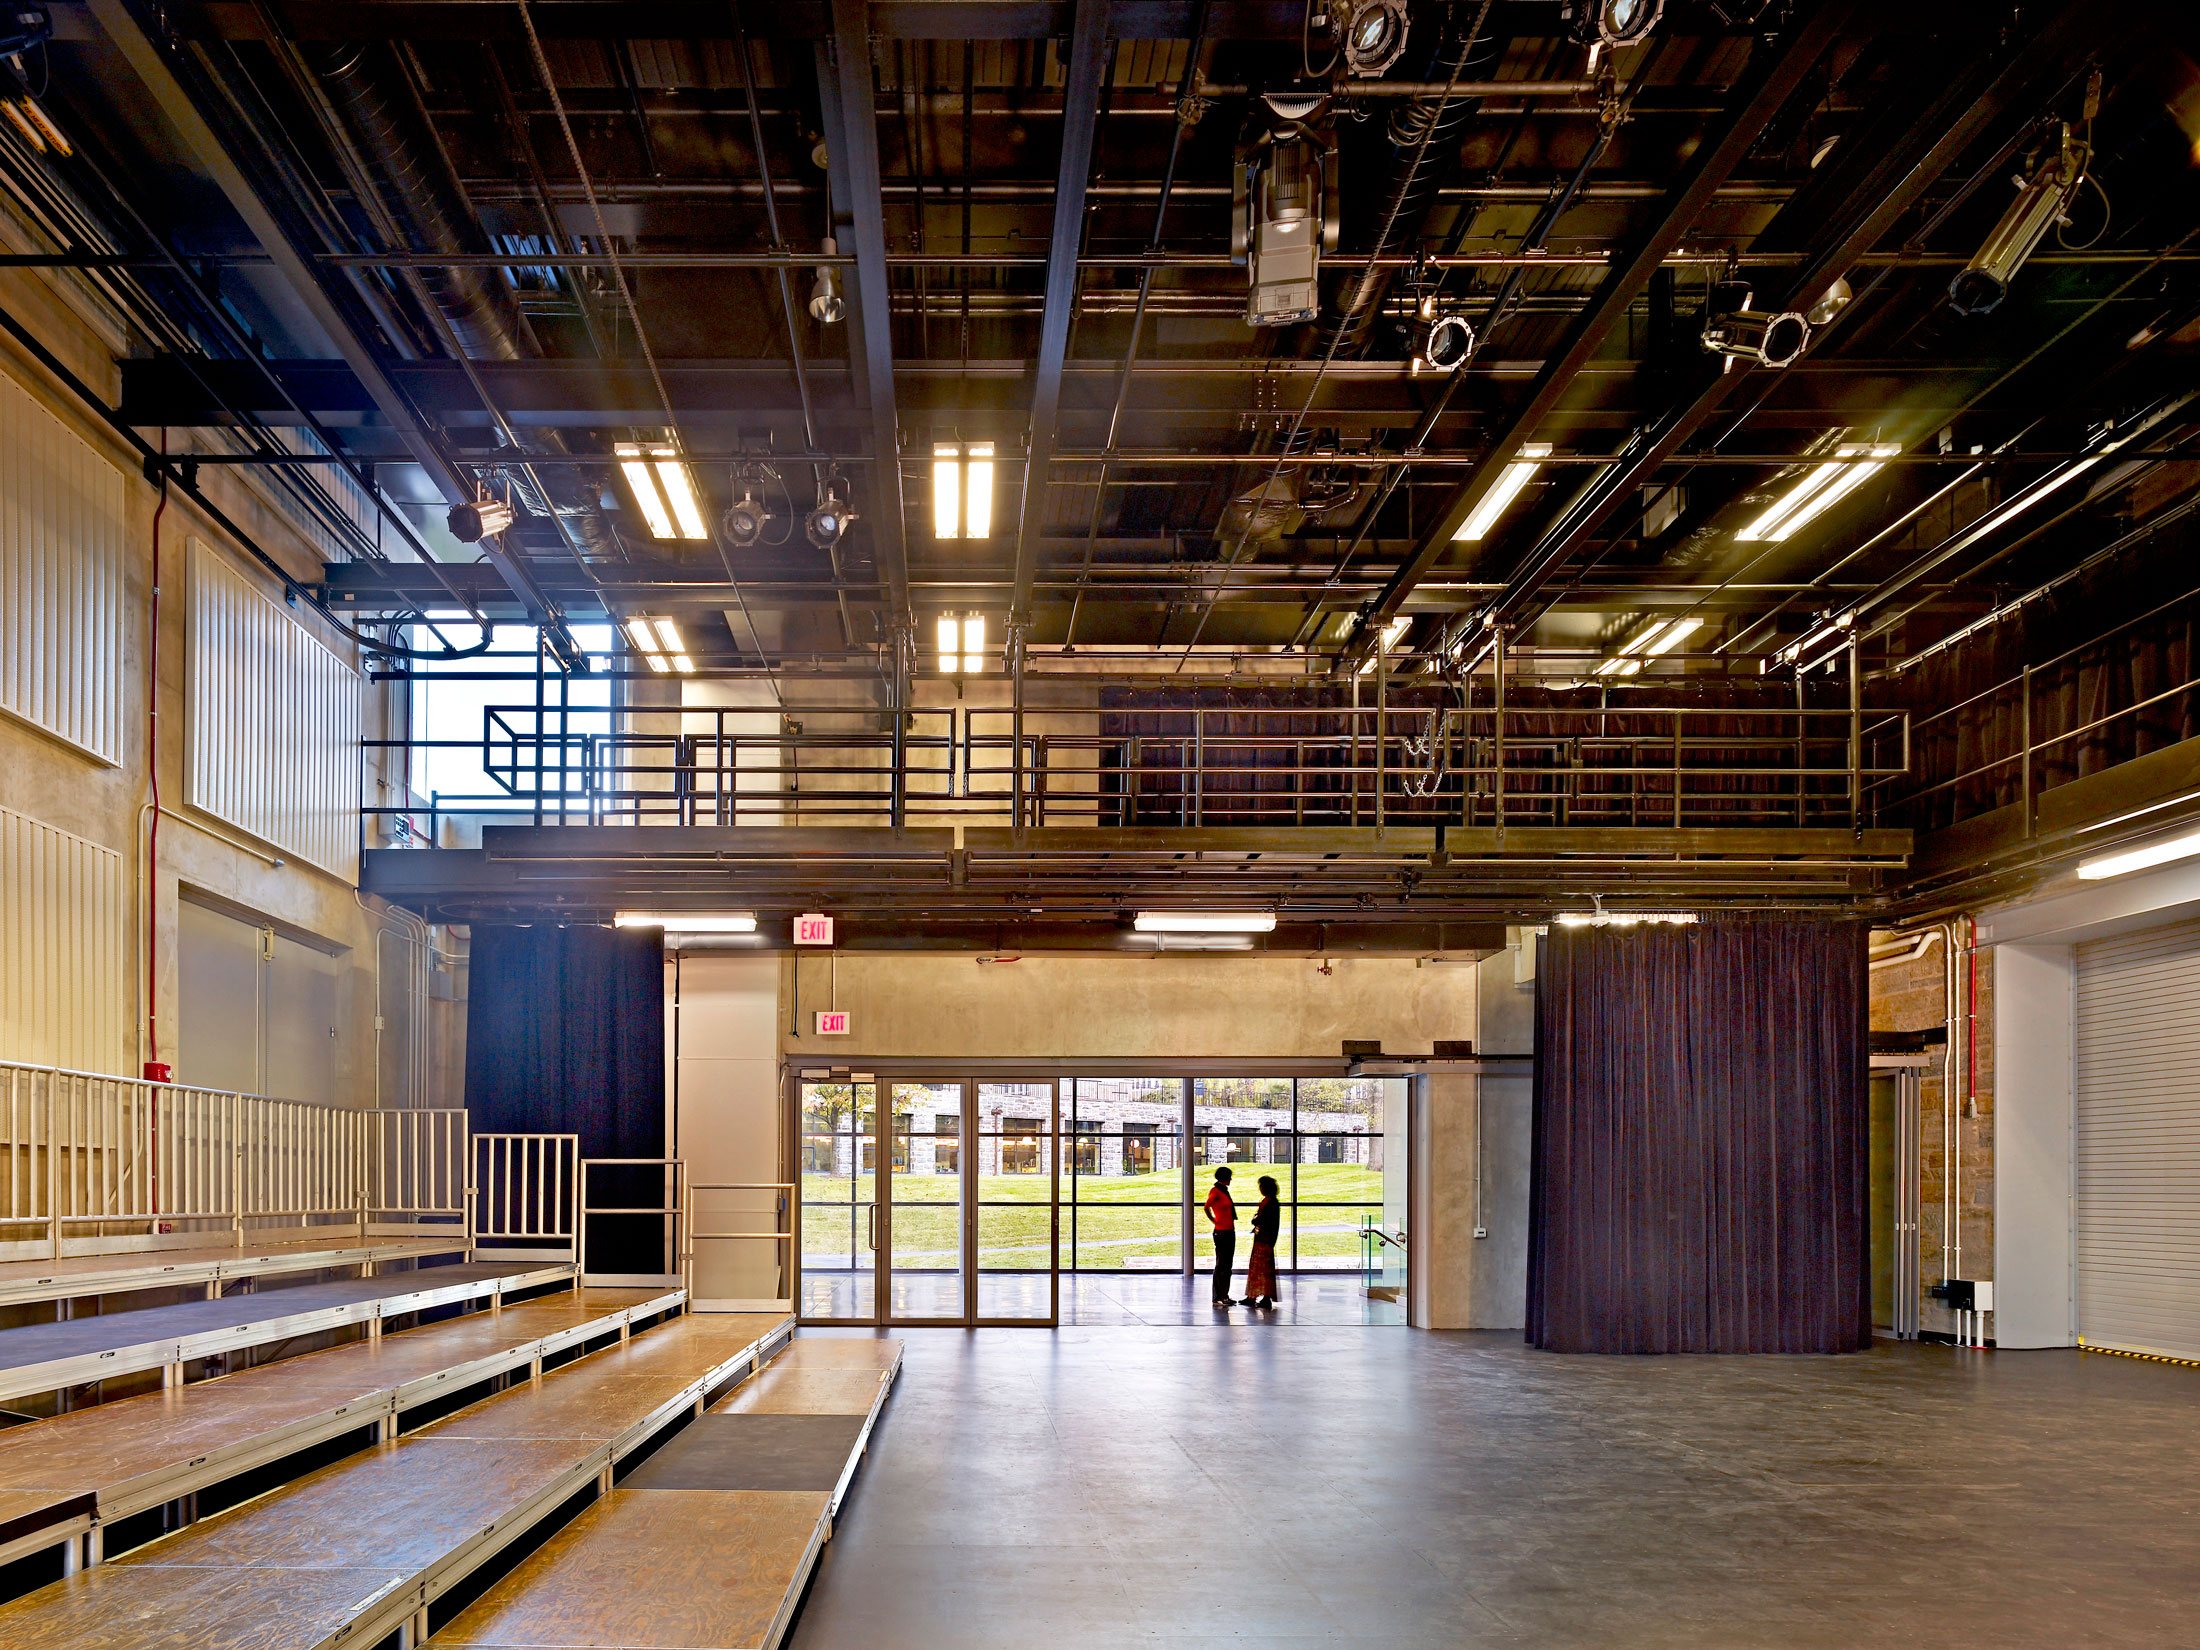 Risers to the left of interior shot of the Hepburn Teaching Theater with two students in the background near the windows.